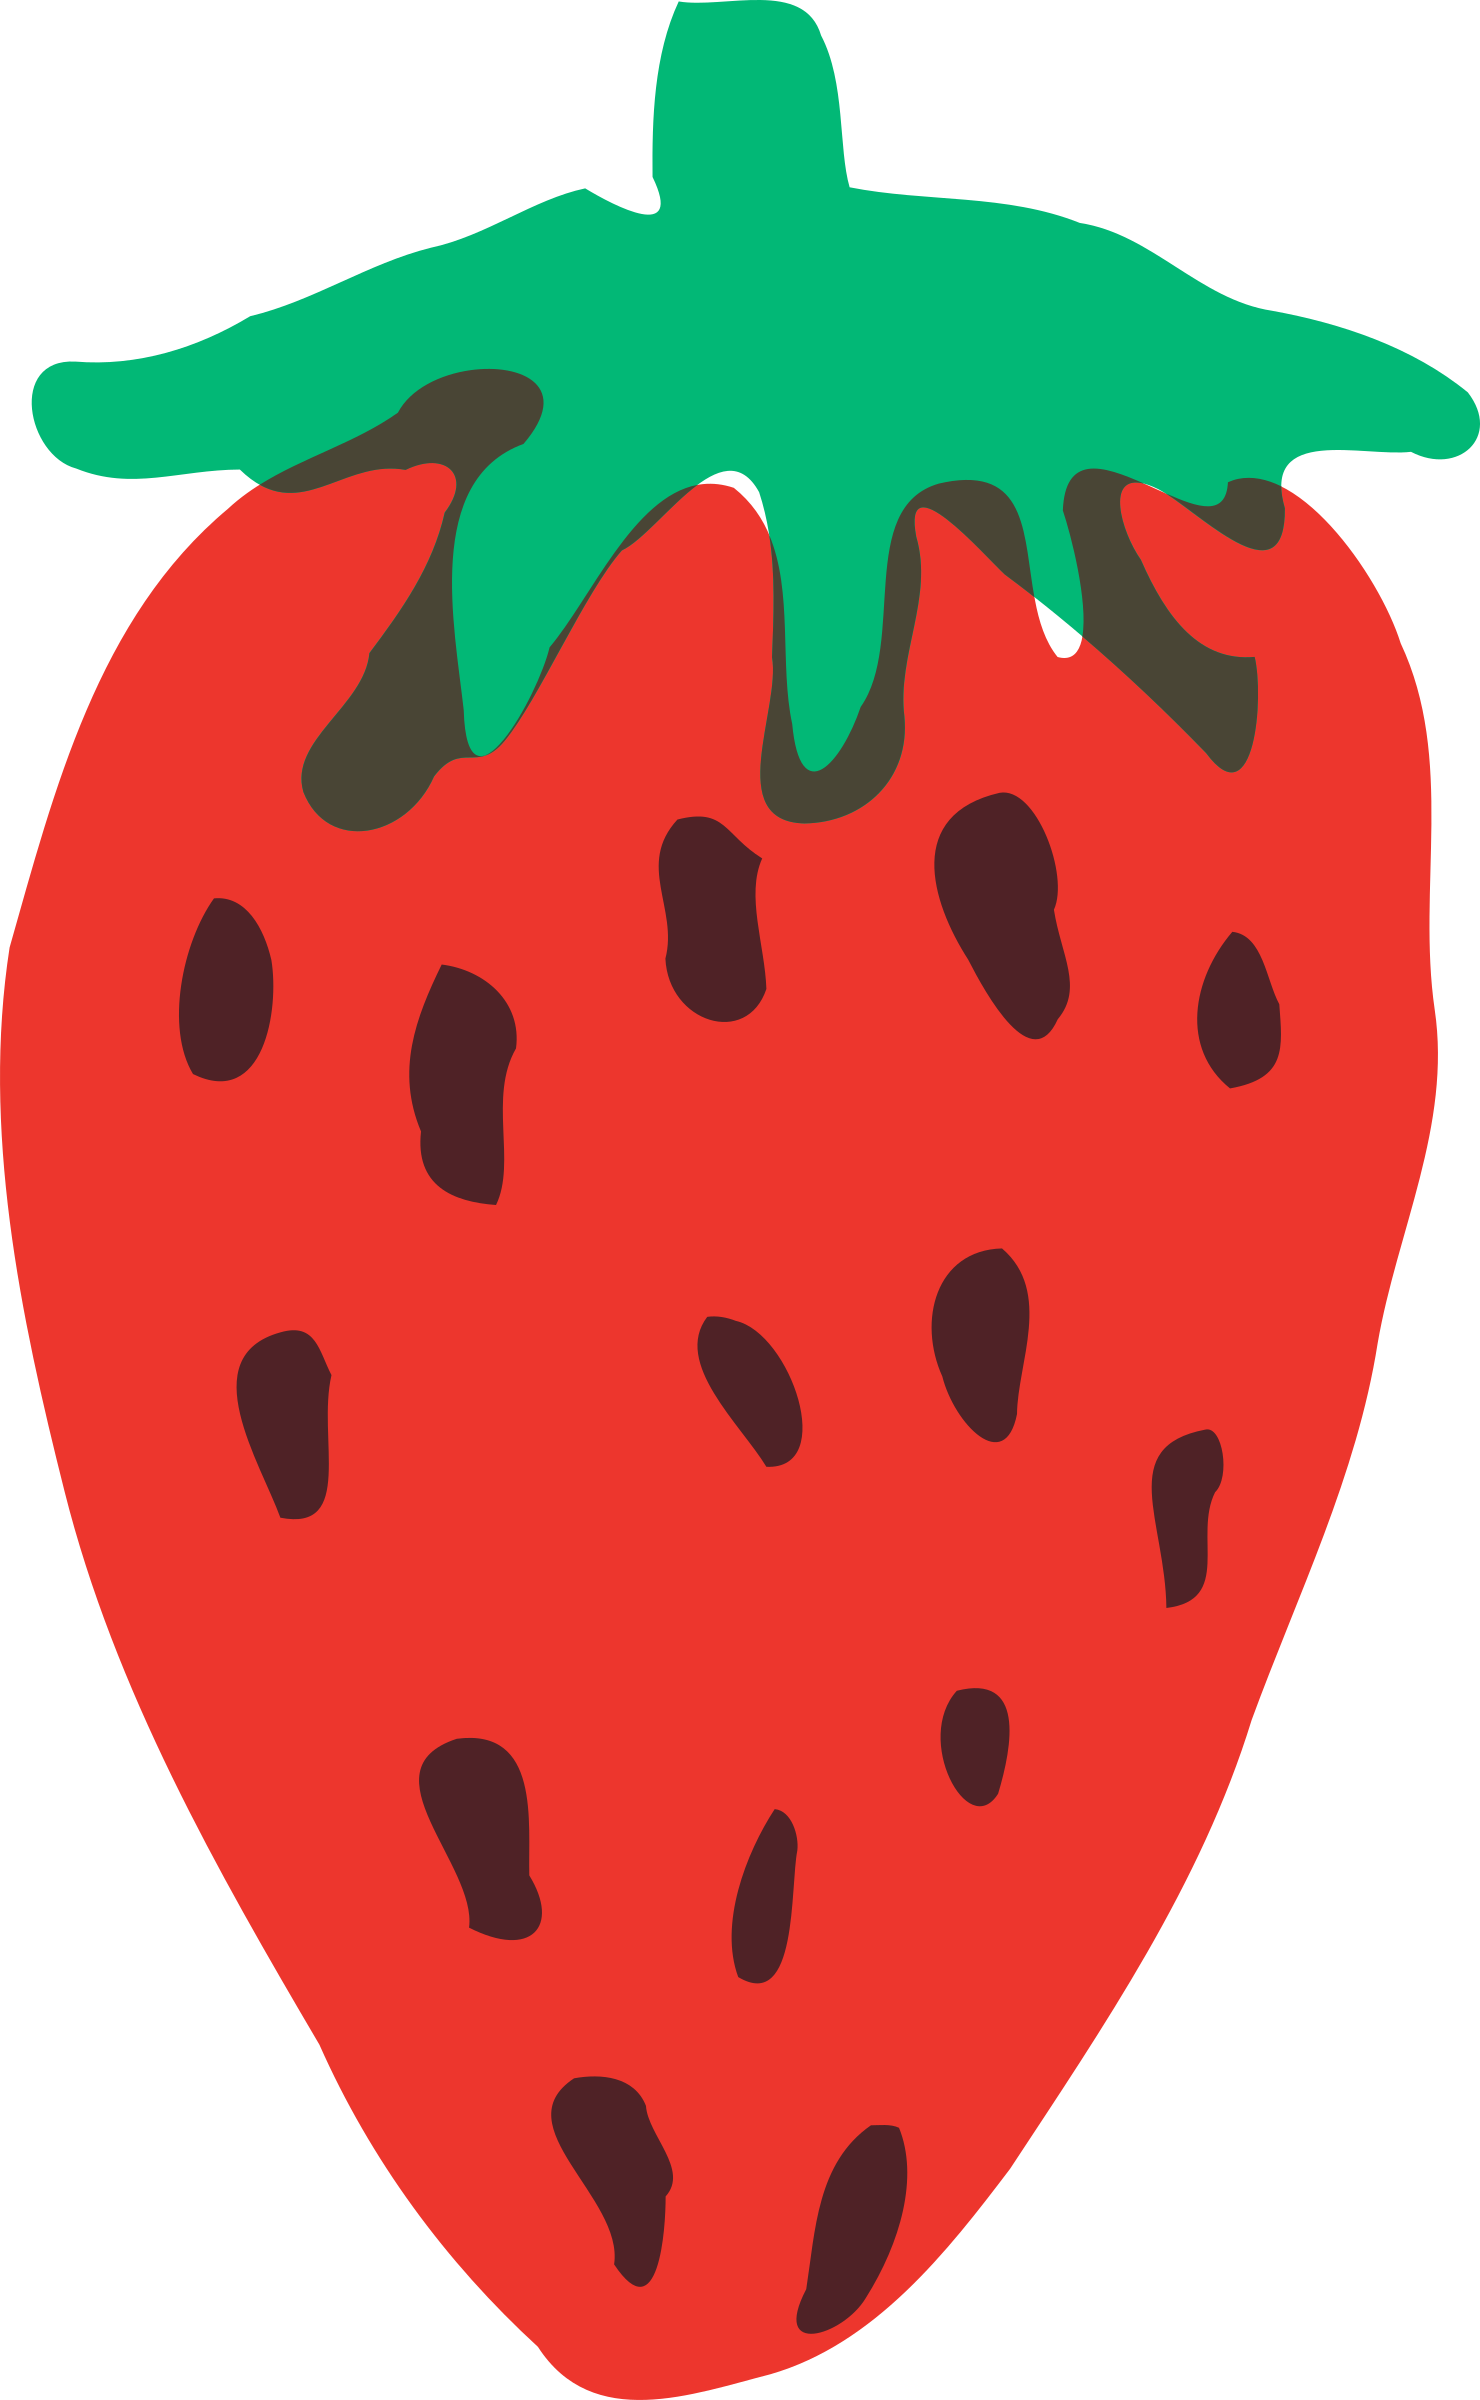 Strawberries clipart heart. Strawberry